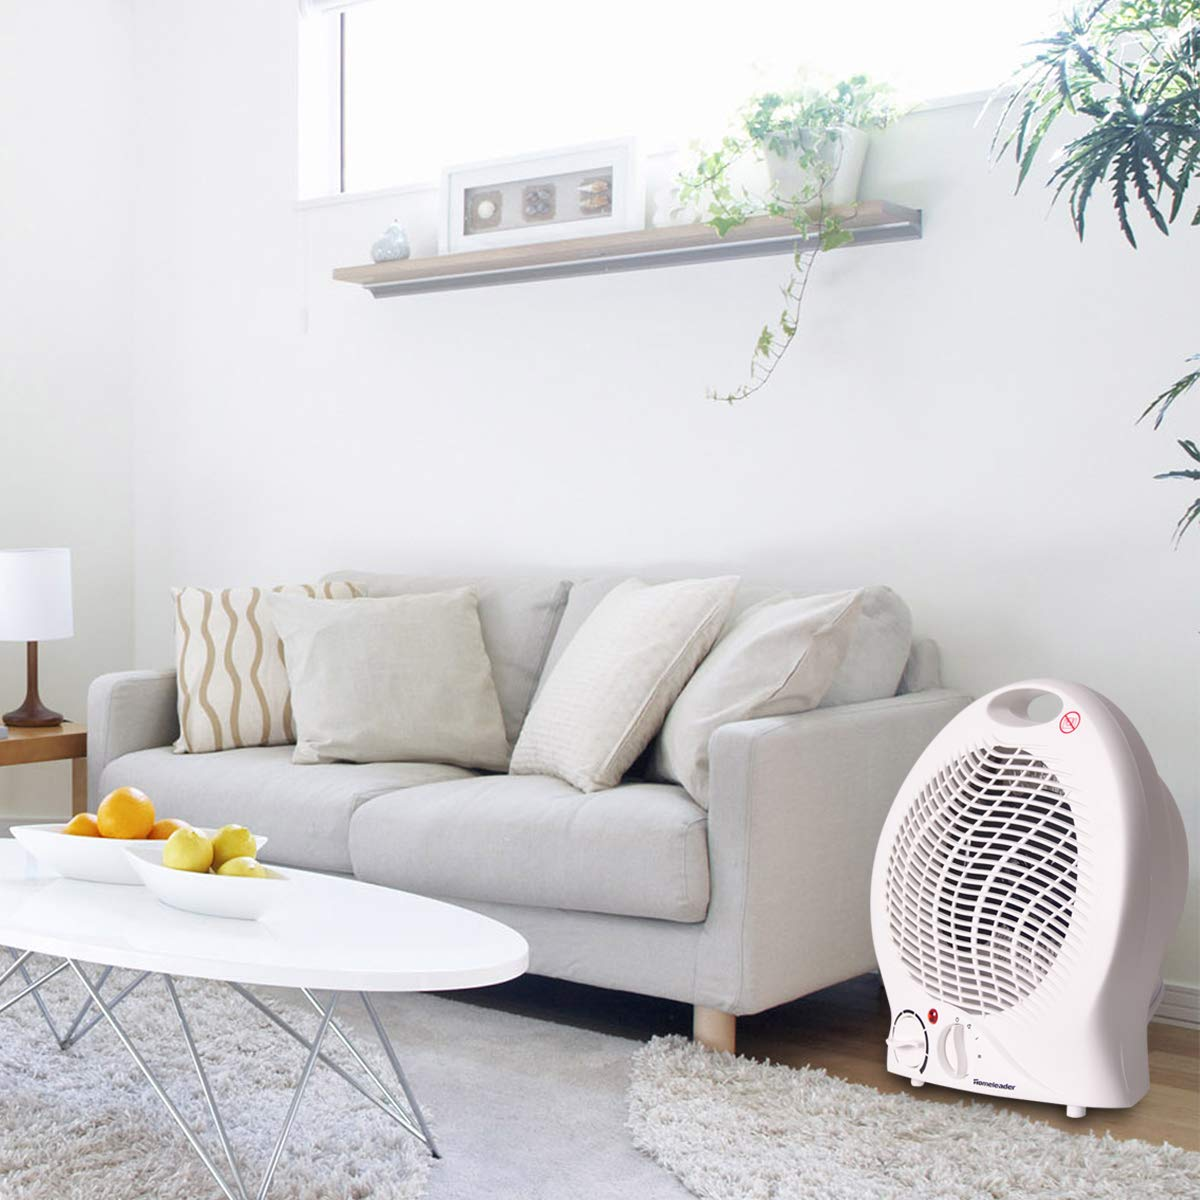 750W//1500W NSB-200C3B Portable Electric Heater with Adjustable Thermoststs Homeleader Ceramic Space Heater for Home and Office